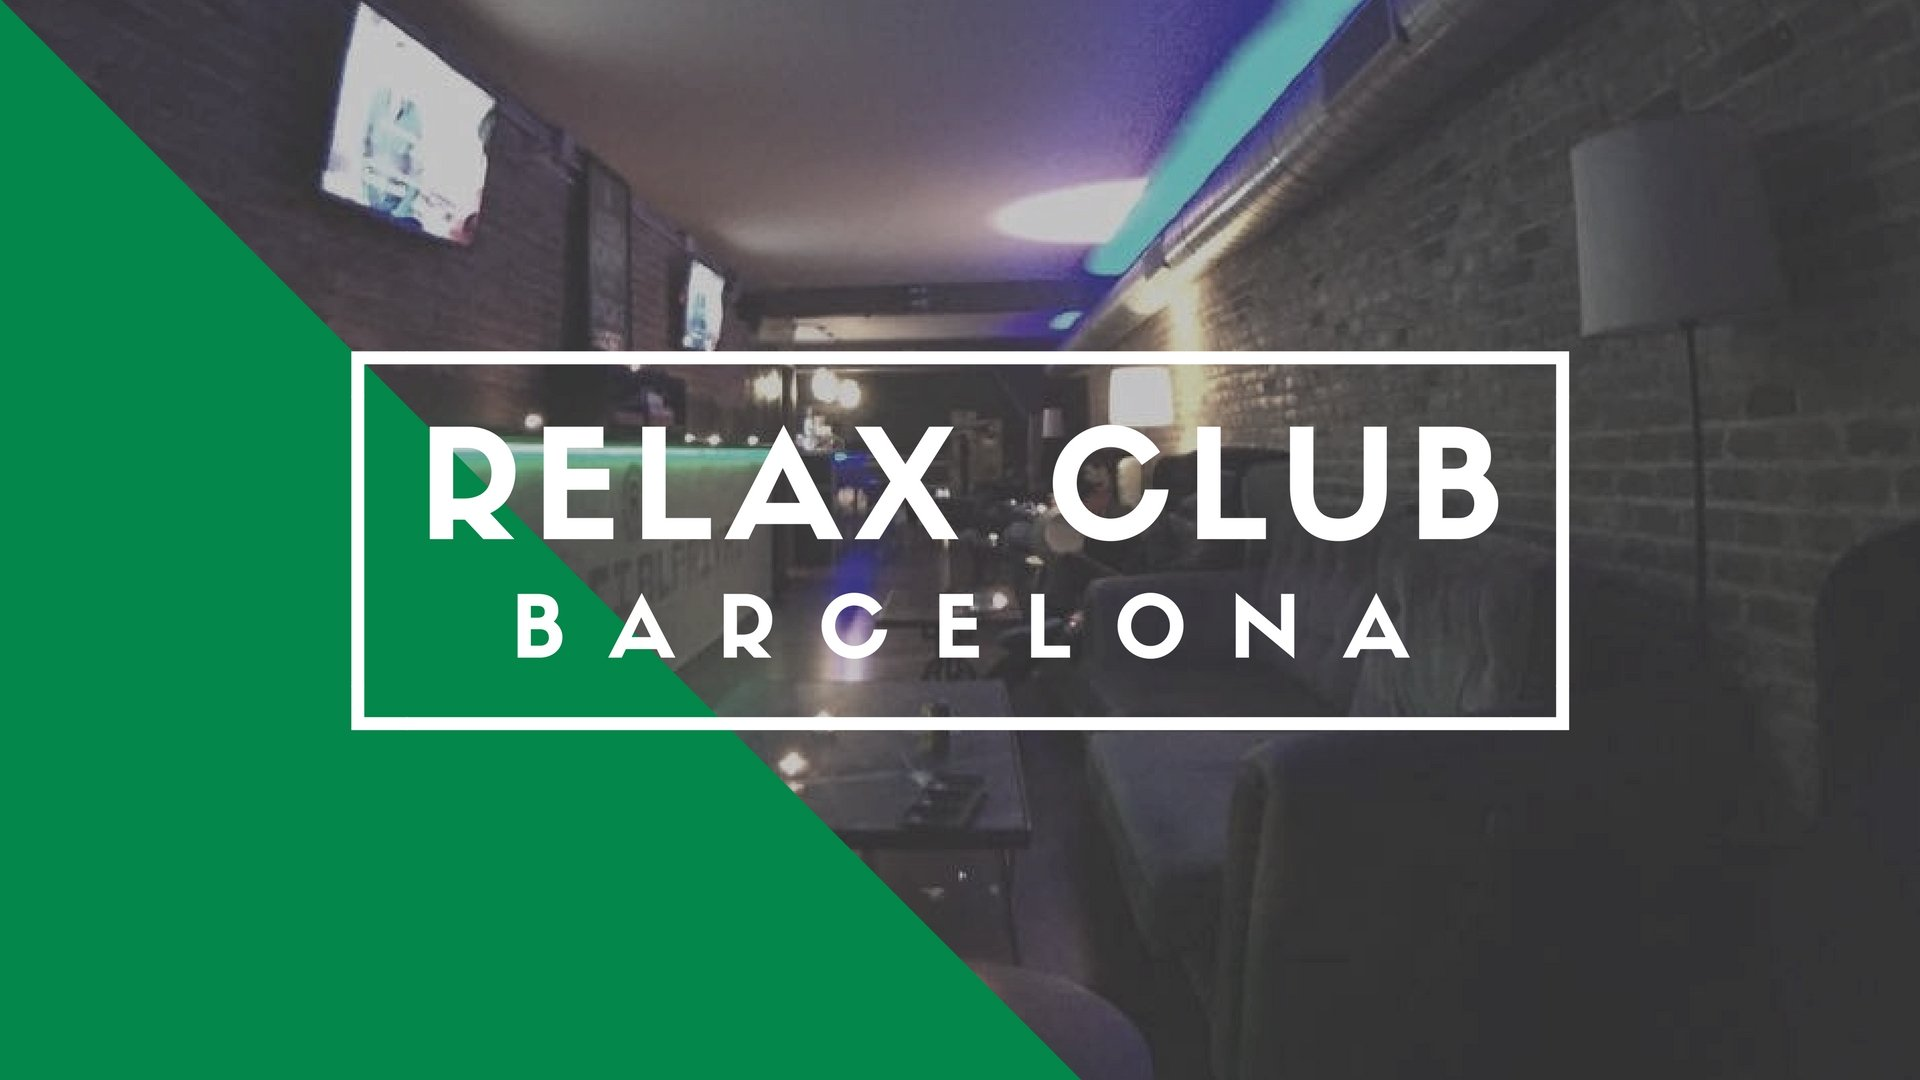 Relax Club, Barcelona